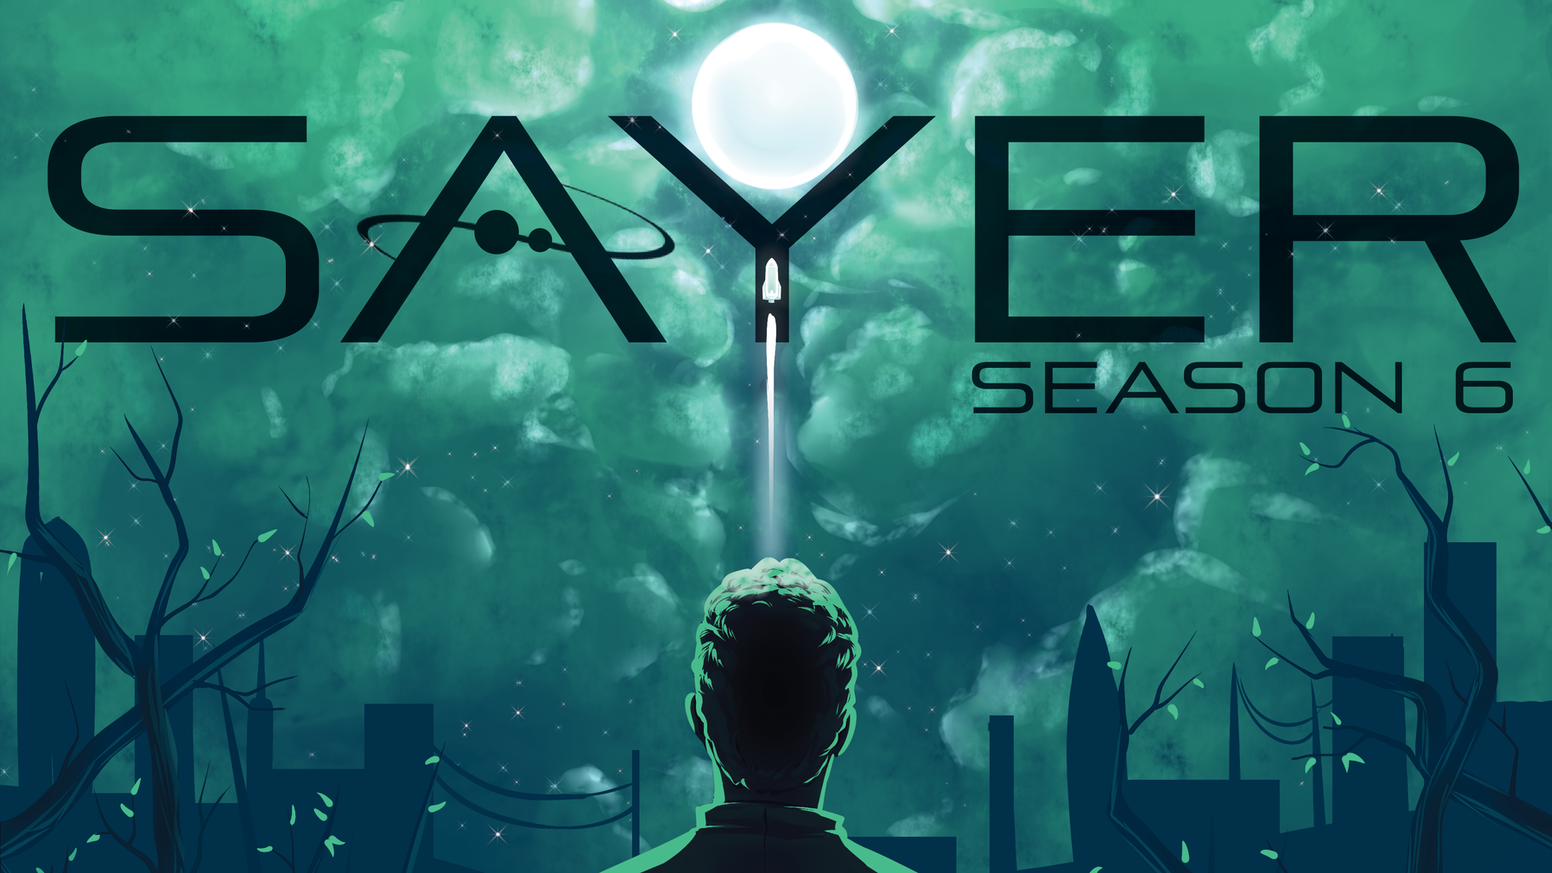 SAYER - Season 6 of the Narrative Science Fiction Podcast by